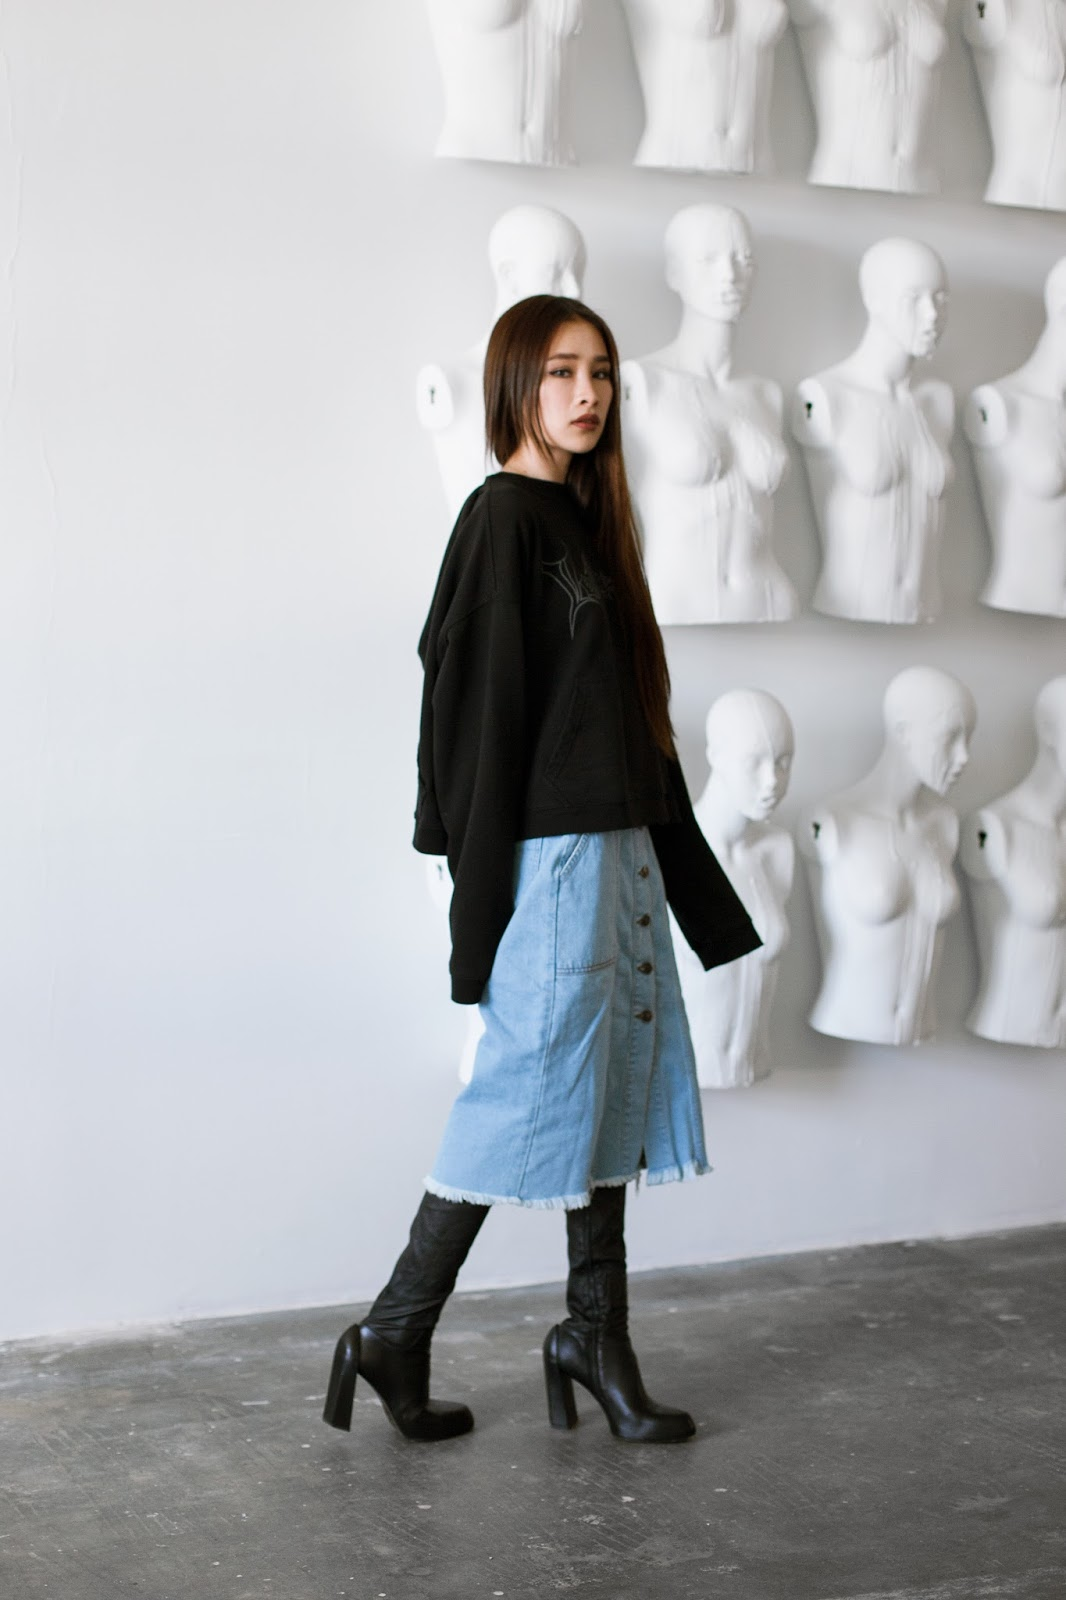 From an easy yet cool outfit, I paired the Vetements hoodie with a  button,front denim skirt and Ann Demeulemeester thigh high boots